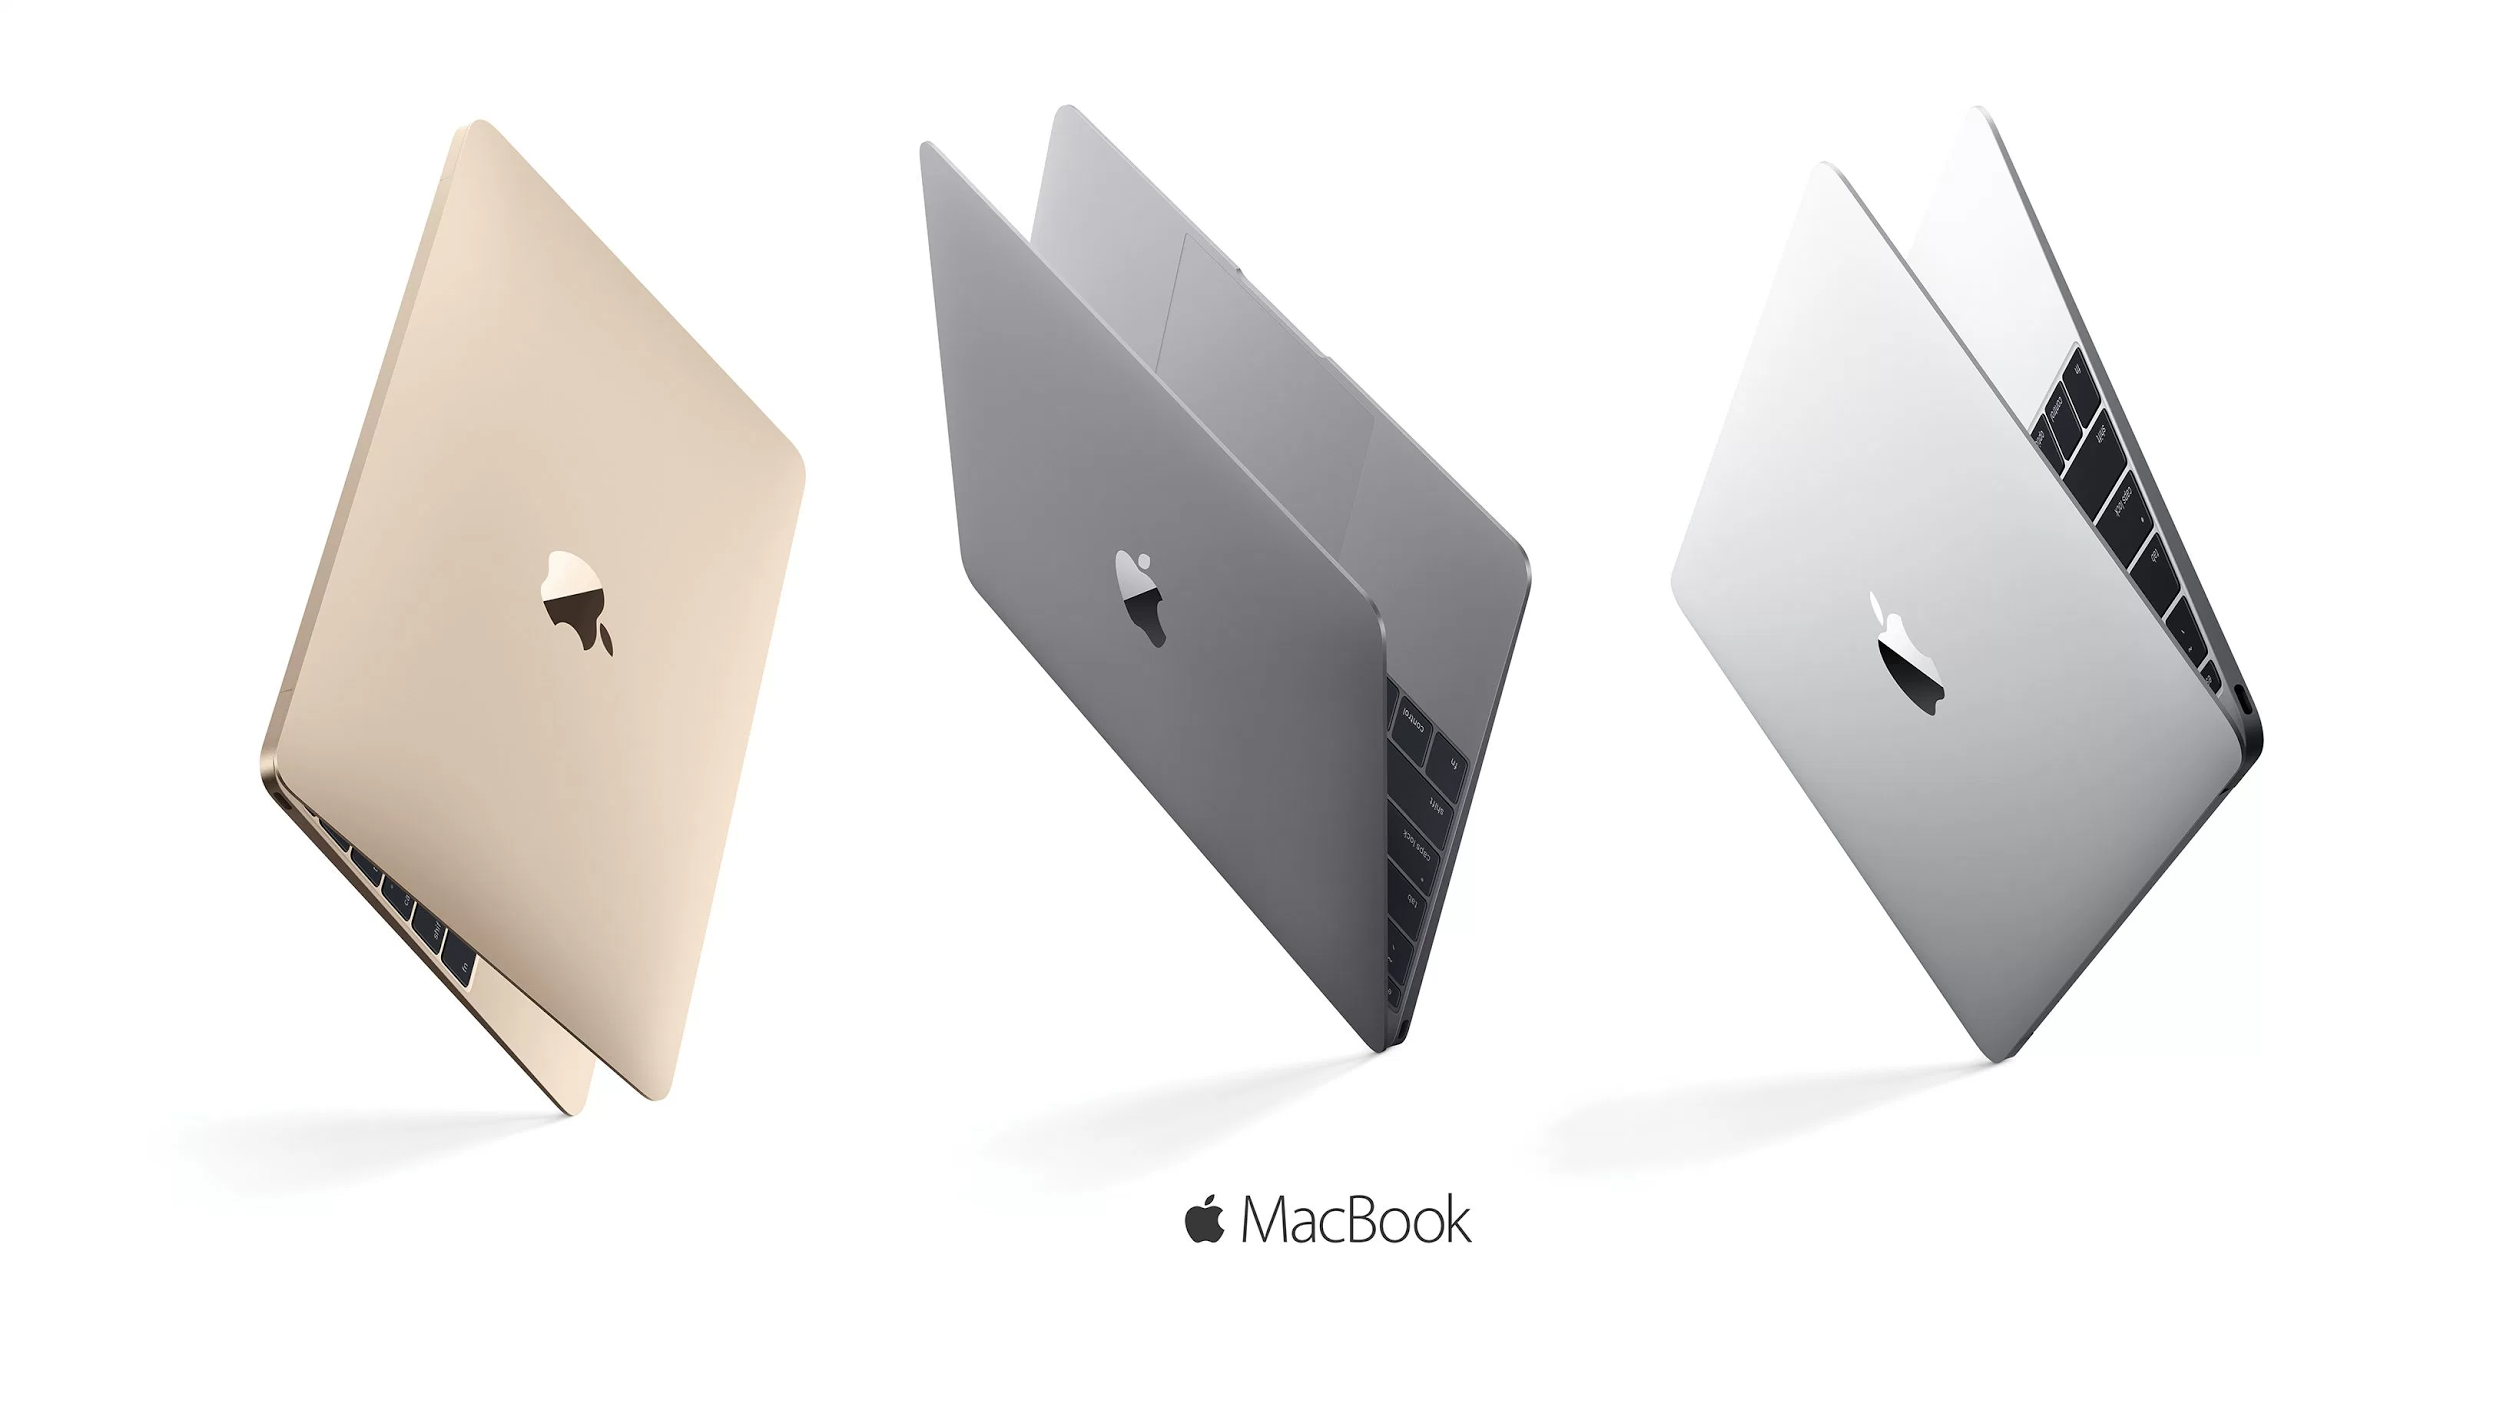 MacBook Pro con el diseño minimalista de Apple